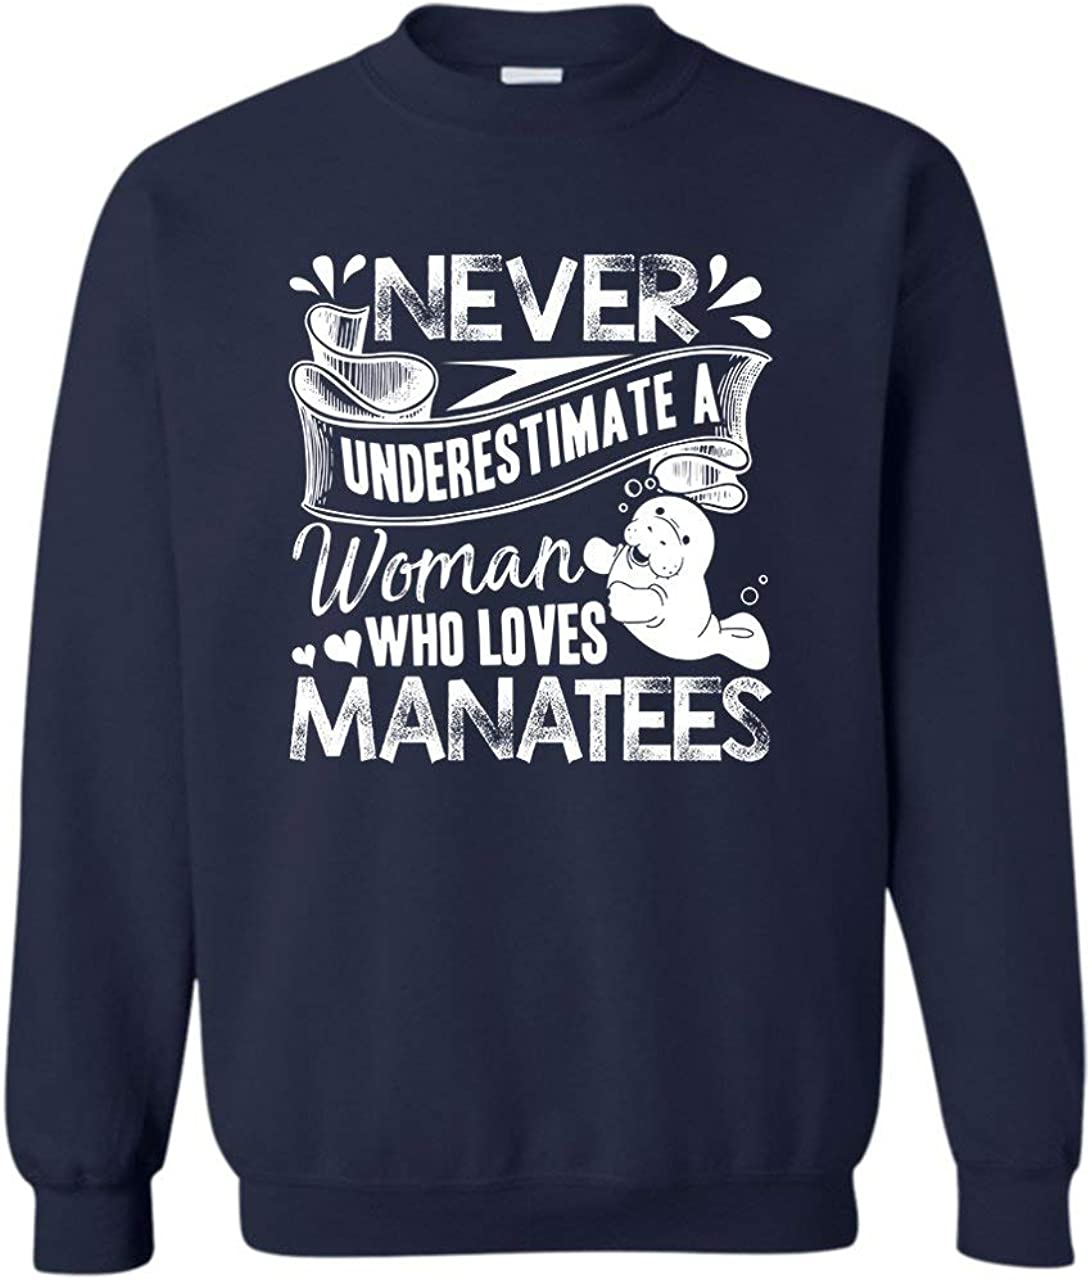 A Austin Mall Woman Who Loves Manatees T Pullover Sweatshirt Shirt Crewneck NEW before selling ☆